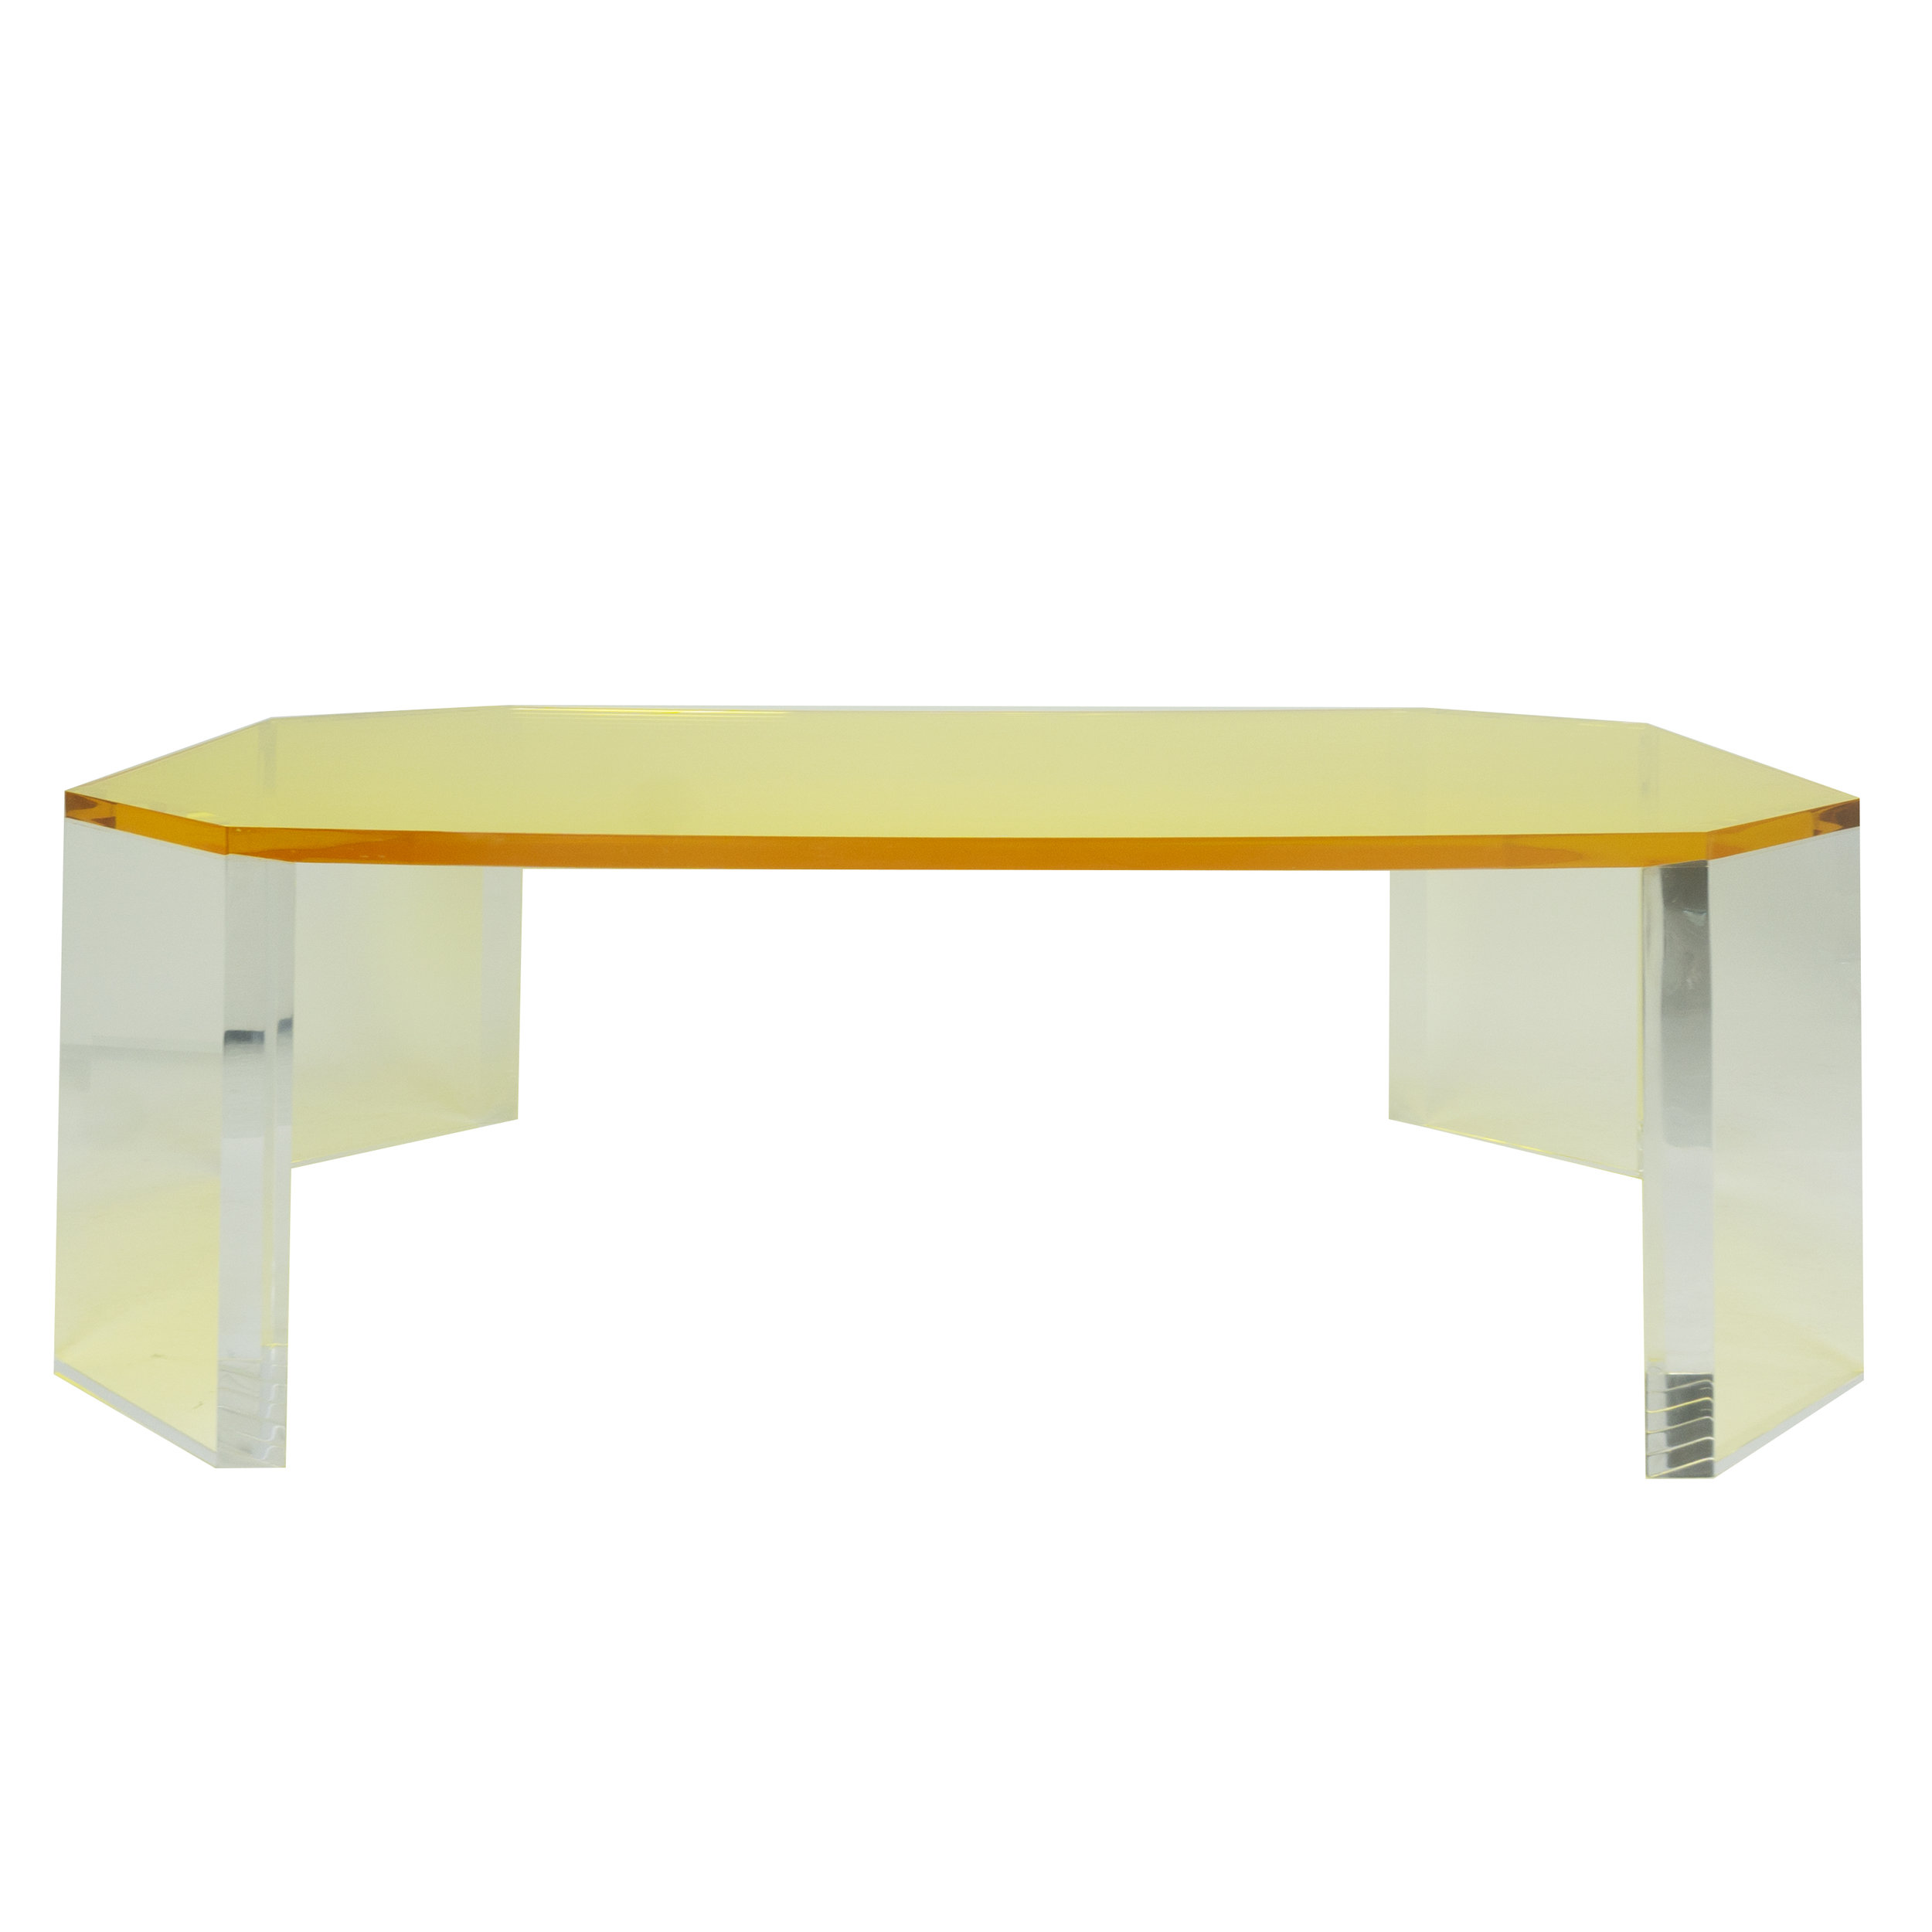 - Yellow Octagon Coffee Table - The Tailored Home.